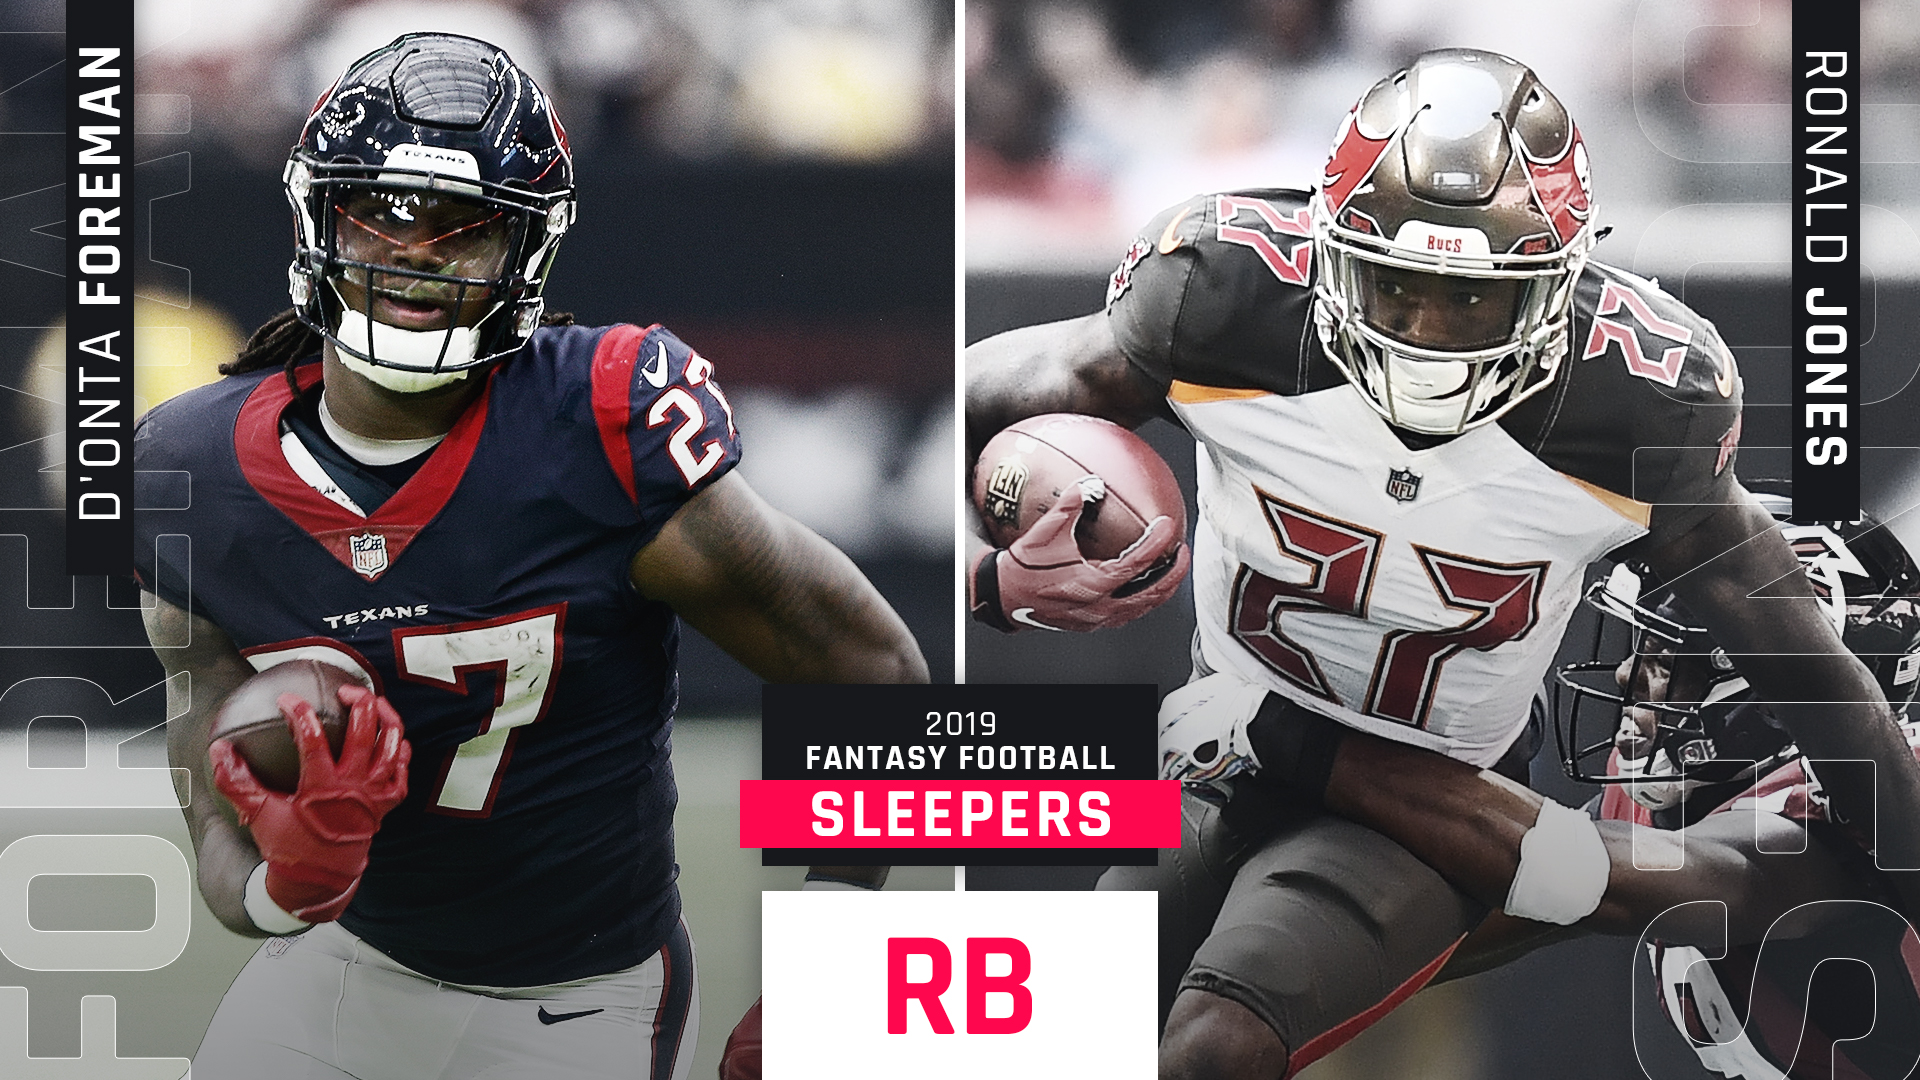 Fantasy Football Sleepers: Running Backs